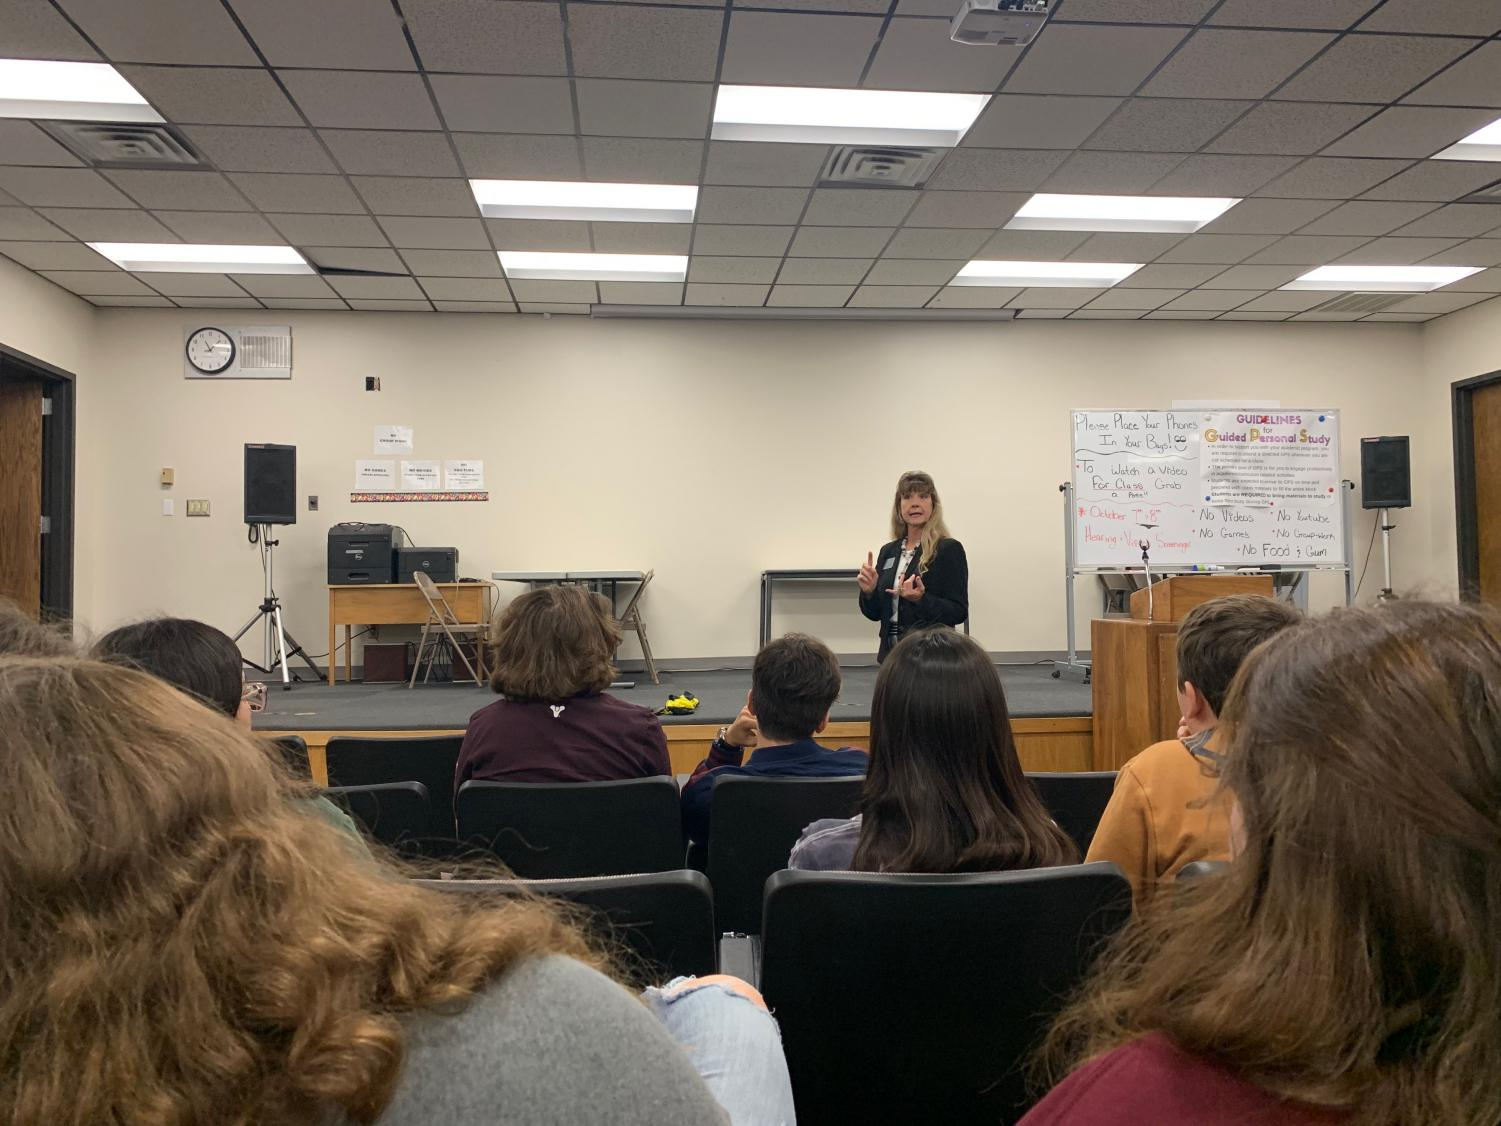 The director of International Student Services at Fort Hays State University, Carol Solko-Ollif, spoke to students in the Lecture Hall during PRIDE Time on Oct. 2 as a career speaker.